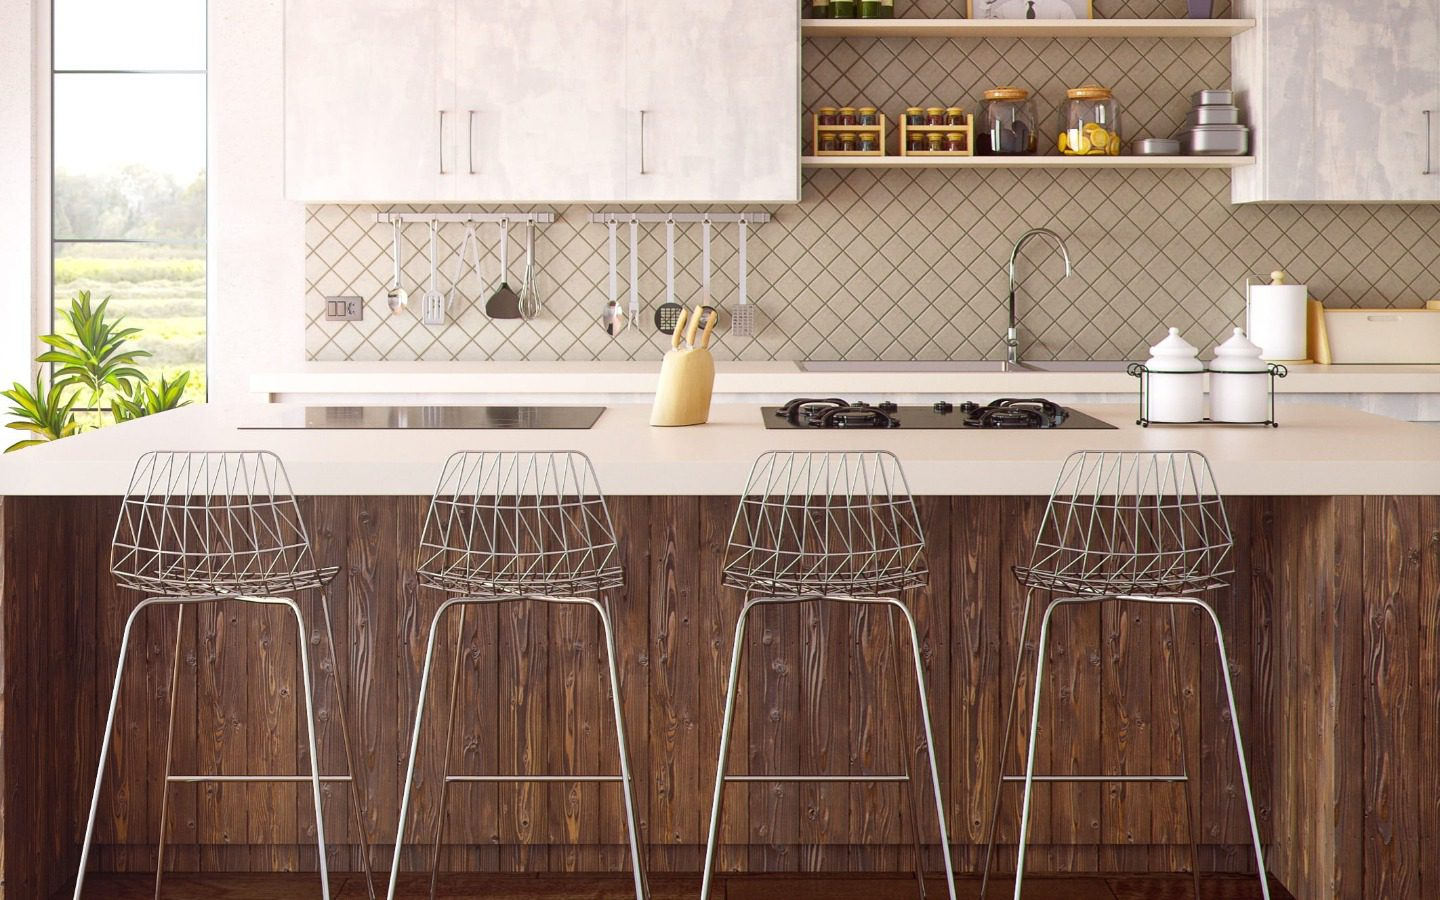 Where to Buy Inexpensive Bar Furniture for Home in the UK